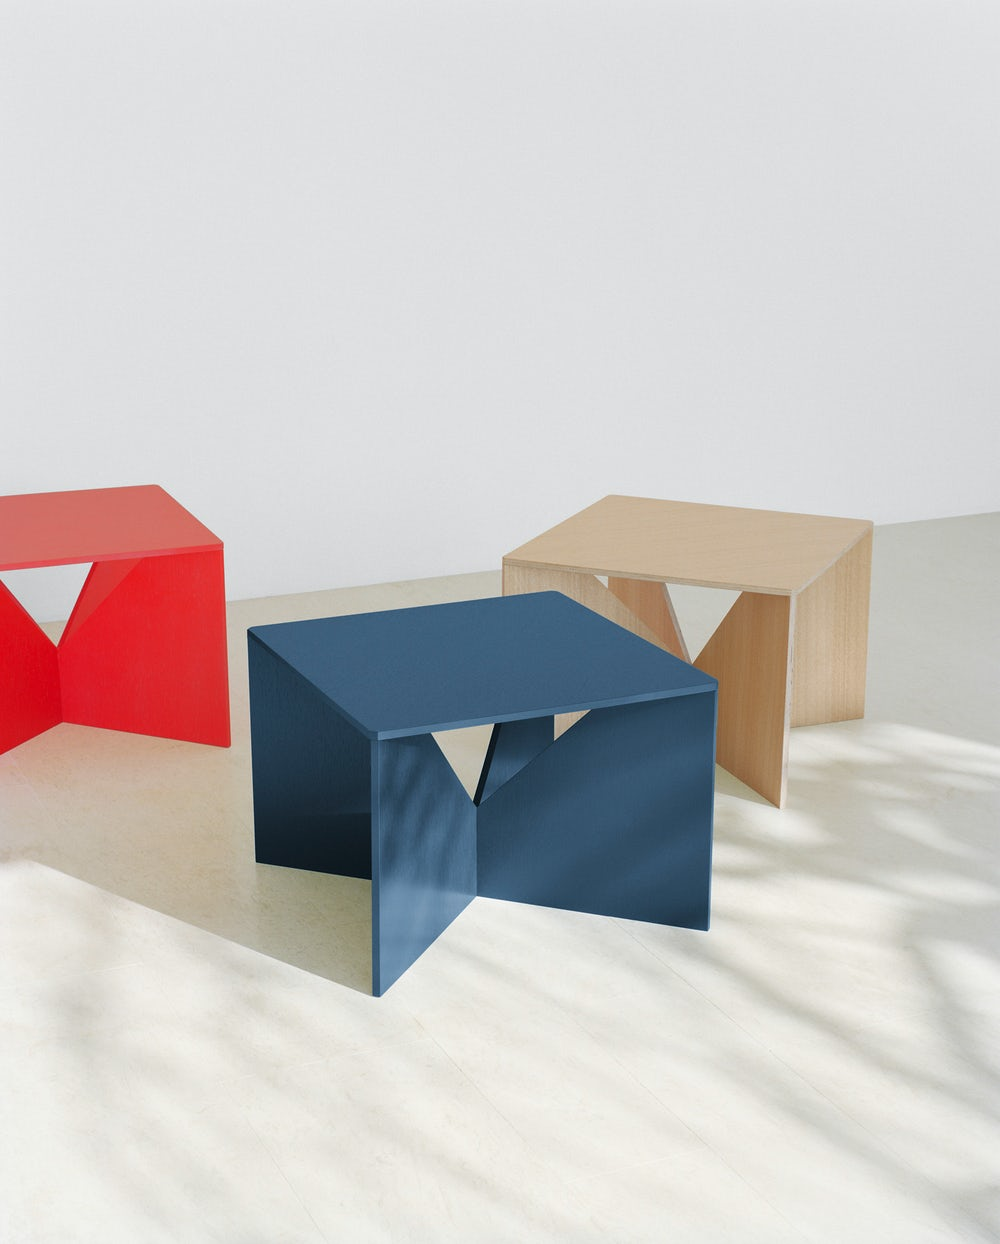 e15 calvert coffee tables by ferdinand kramer for e15